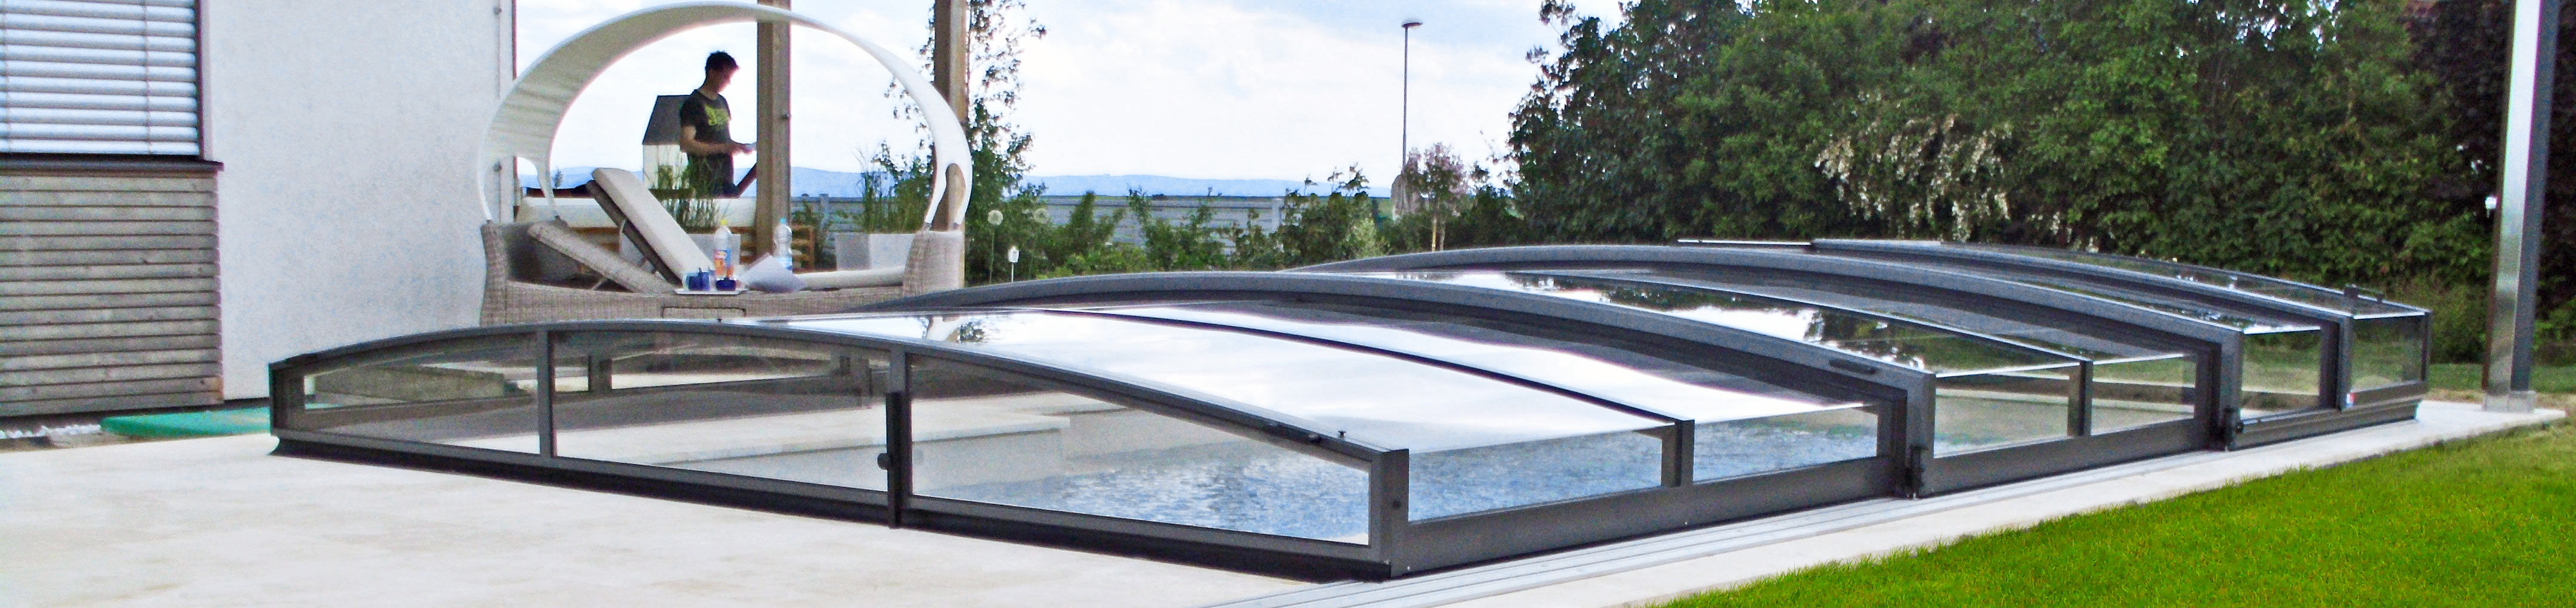 Low pool enclosure Viva from Alukov